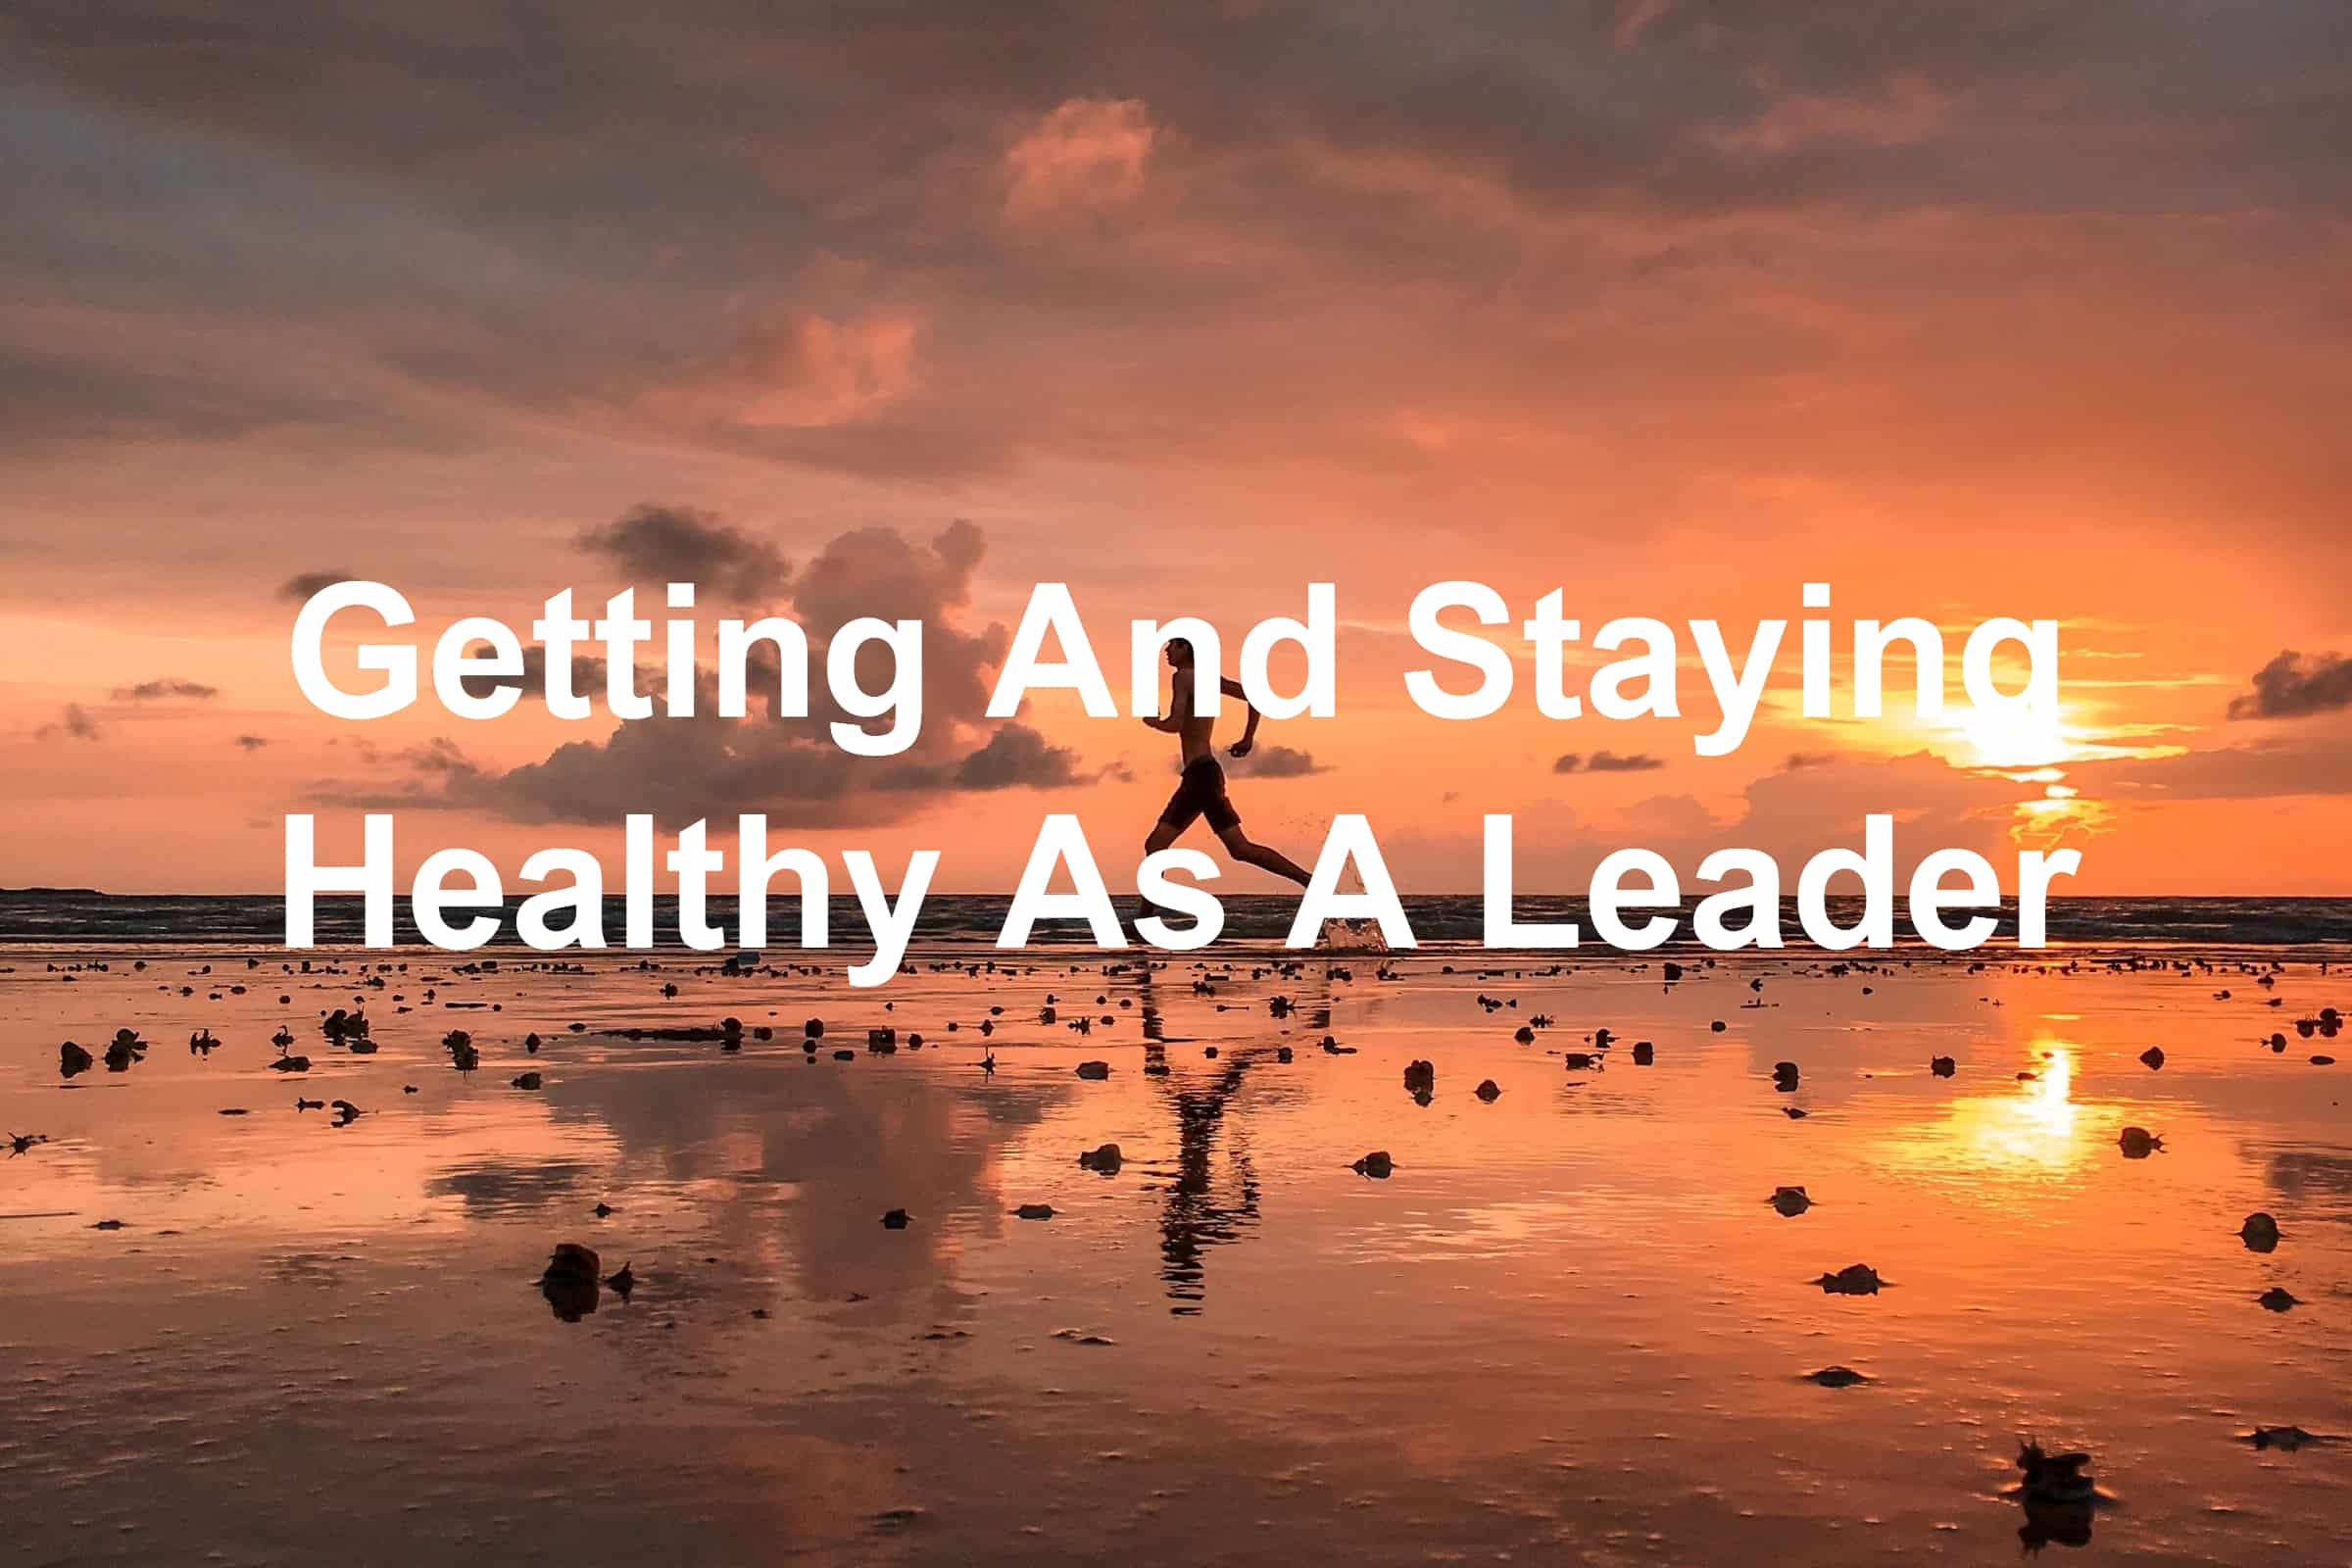 Ways to get healthy as a leader